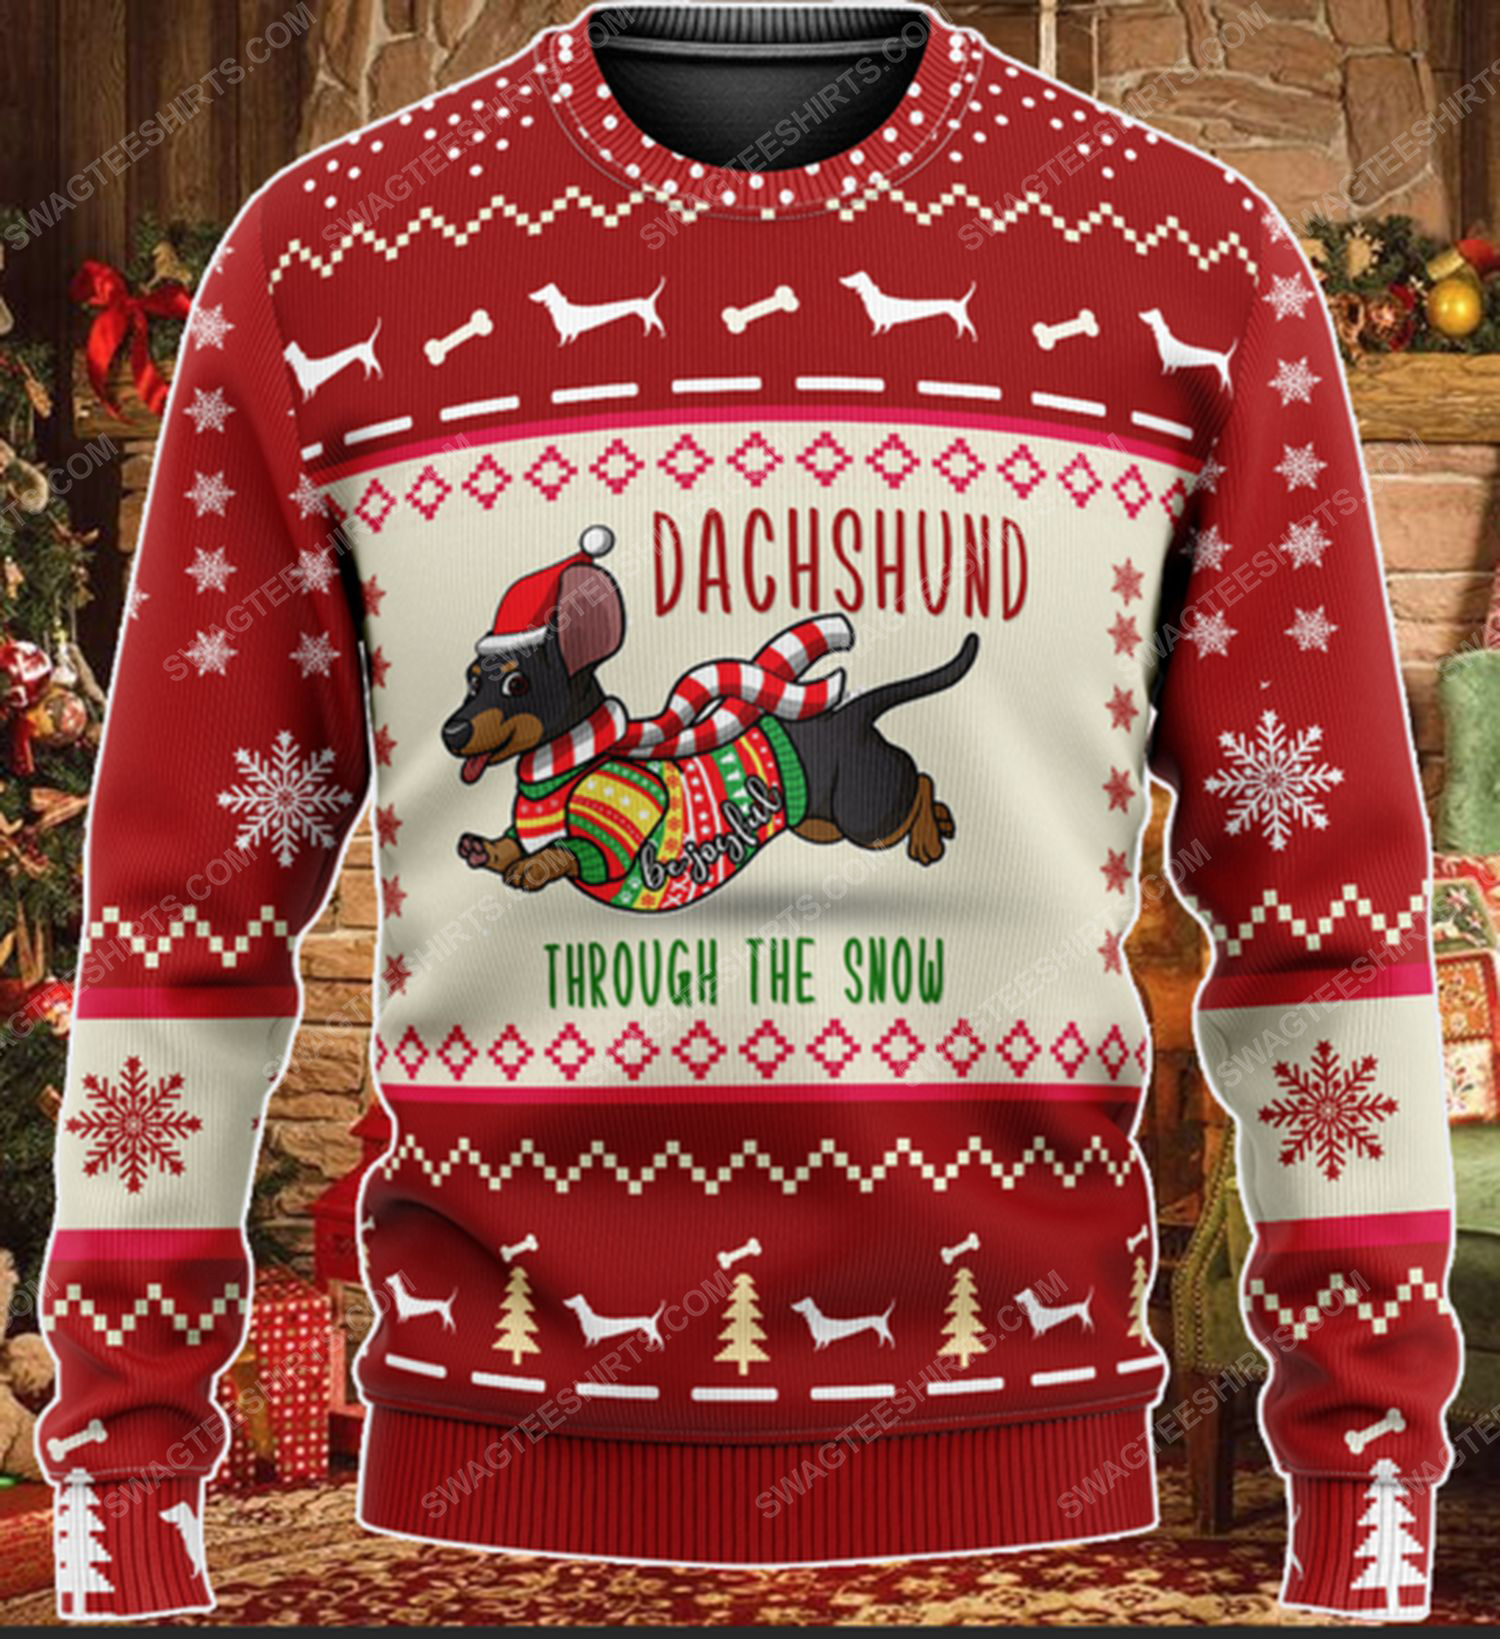 Dachshund through the snow all over print ugly christmas sweater 2